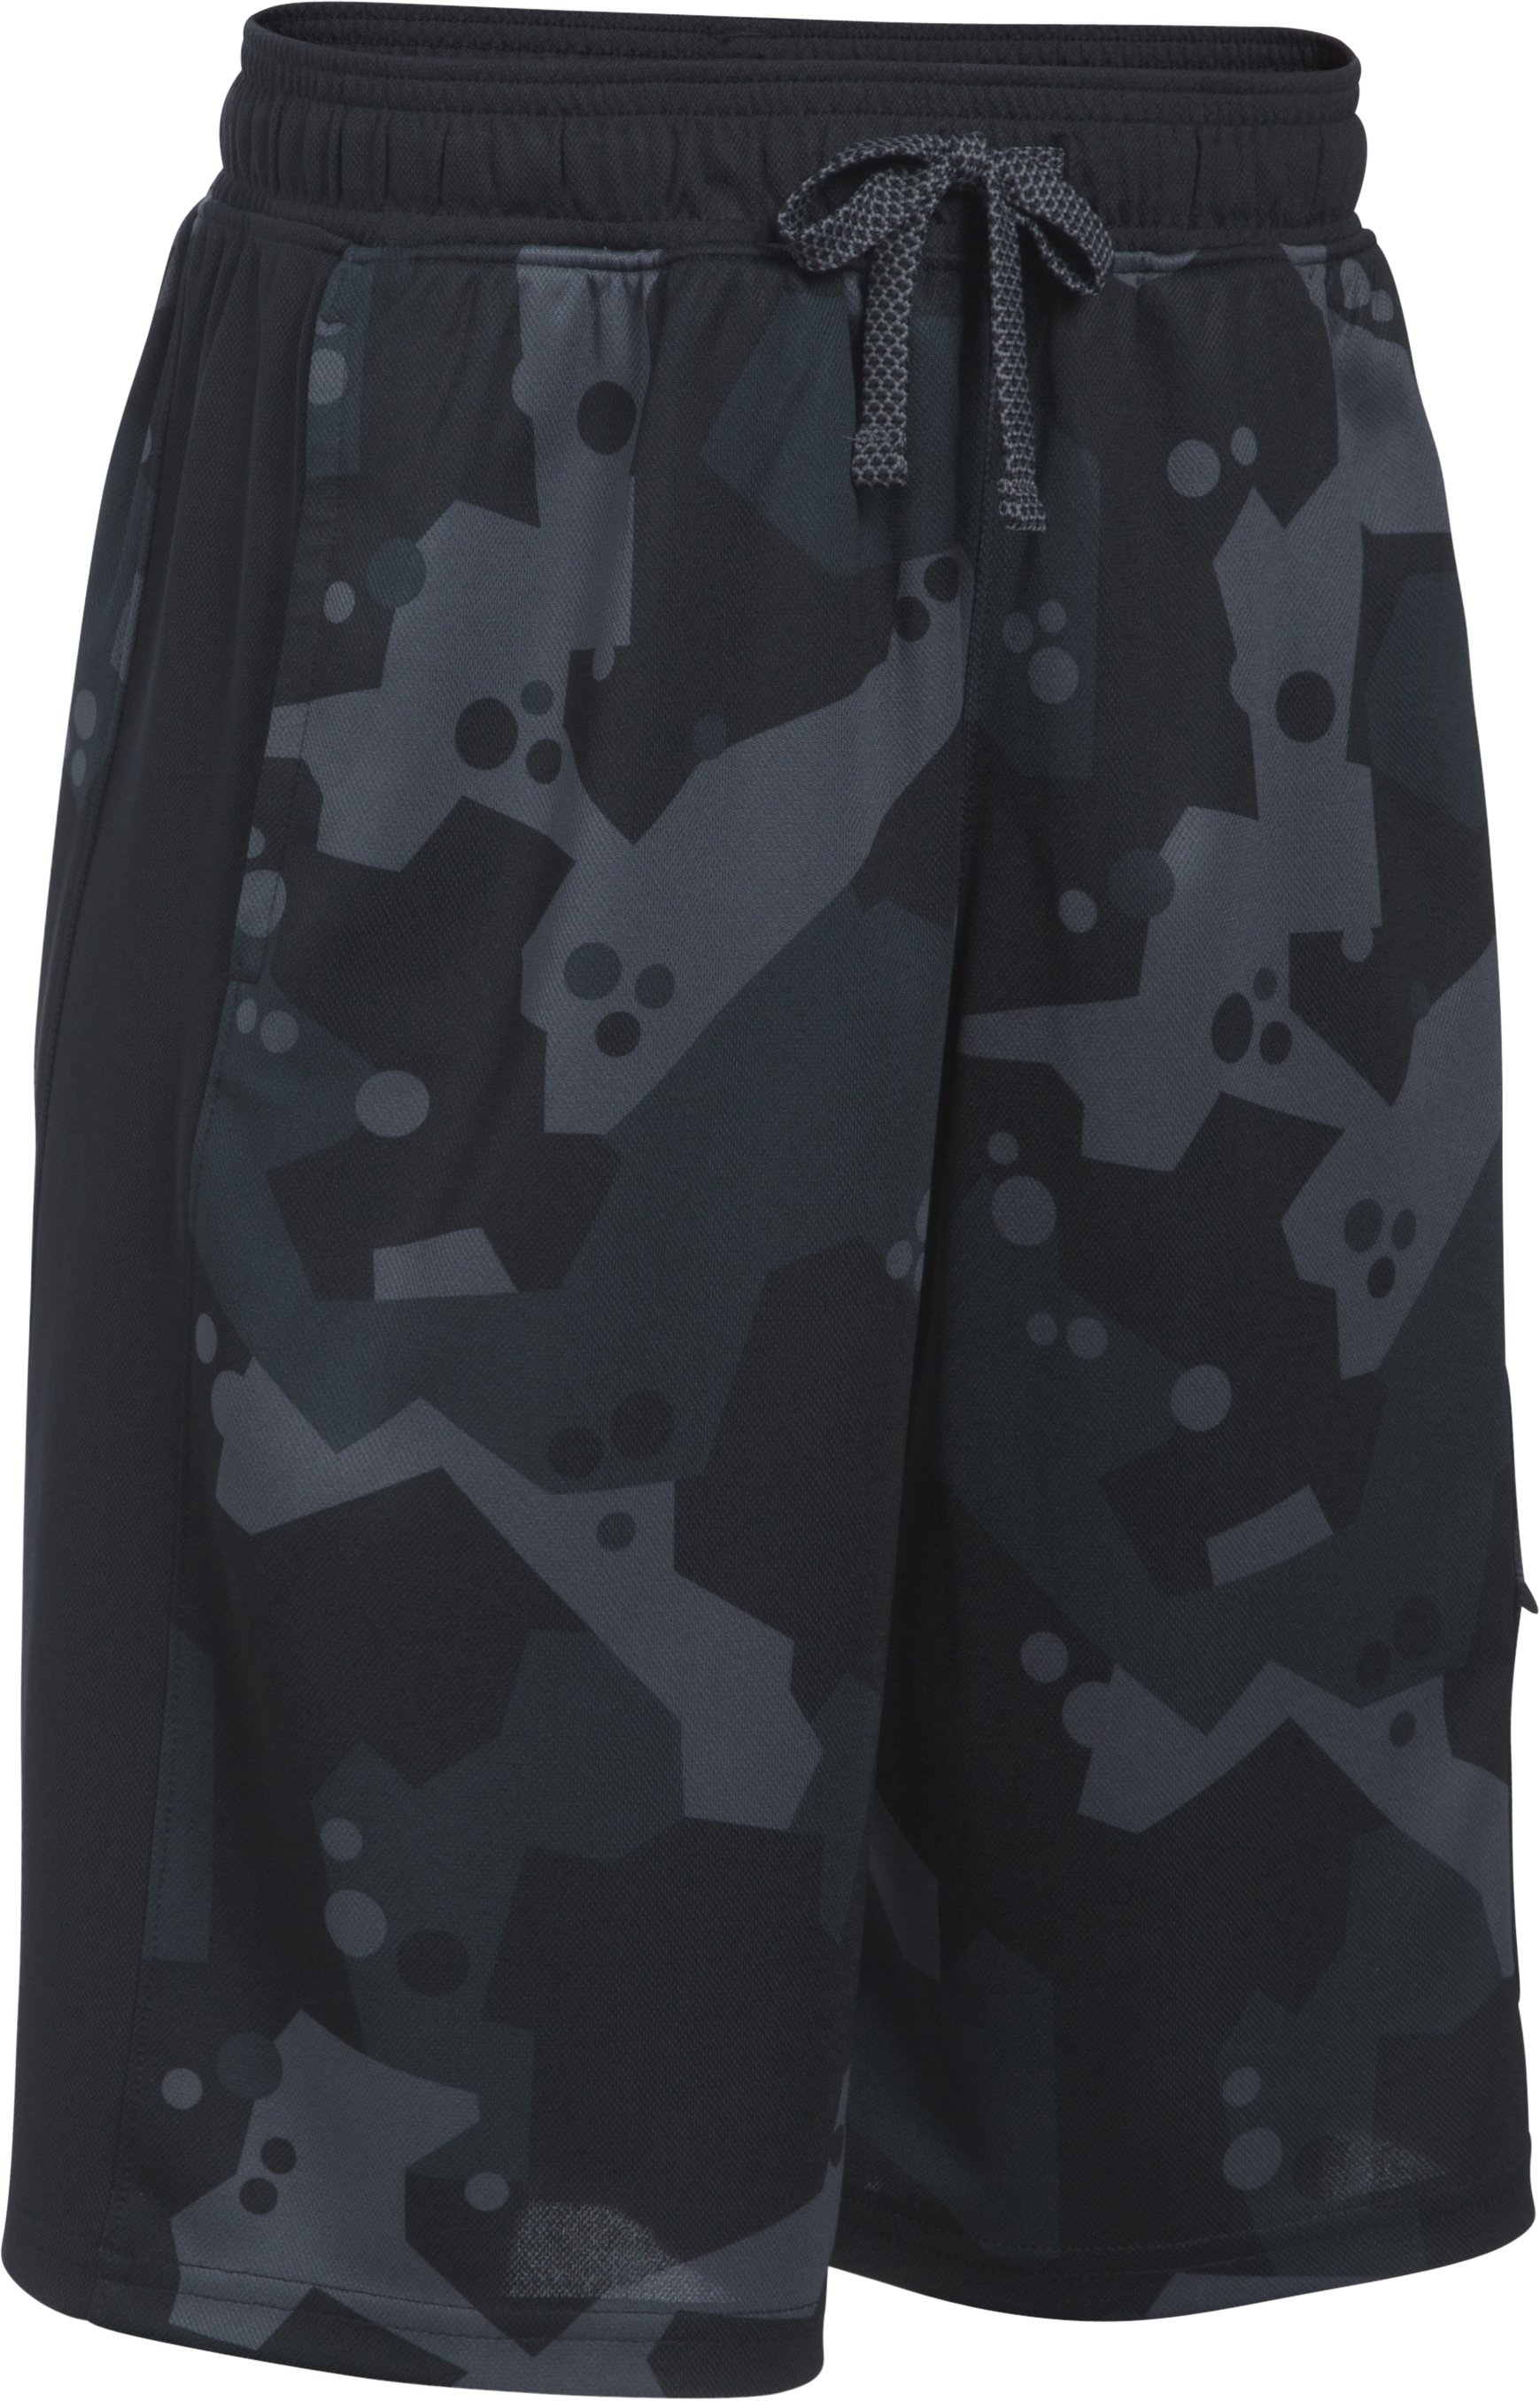 Boys' UA Pursuit Cargo Shorts, BLACK MEDIUM HEATHER, zoomed image